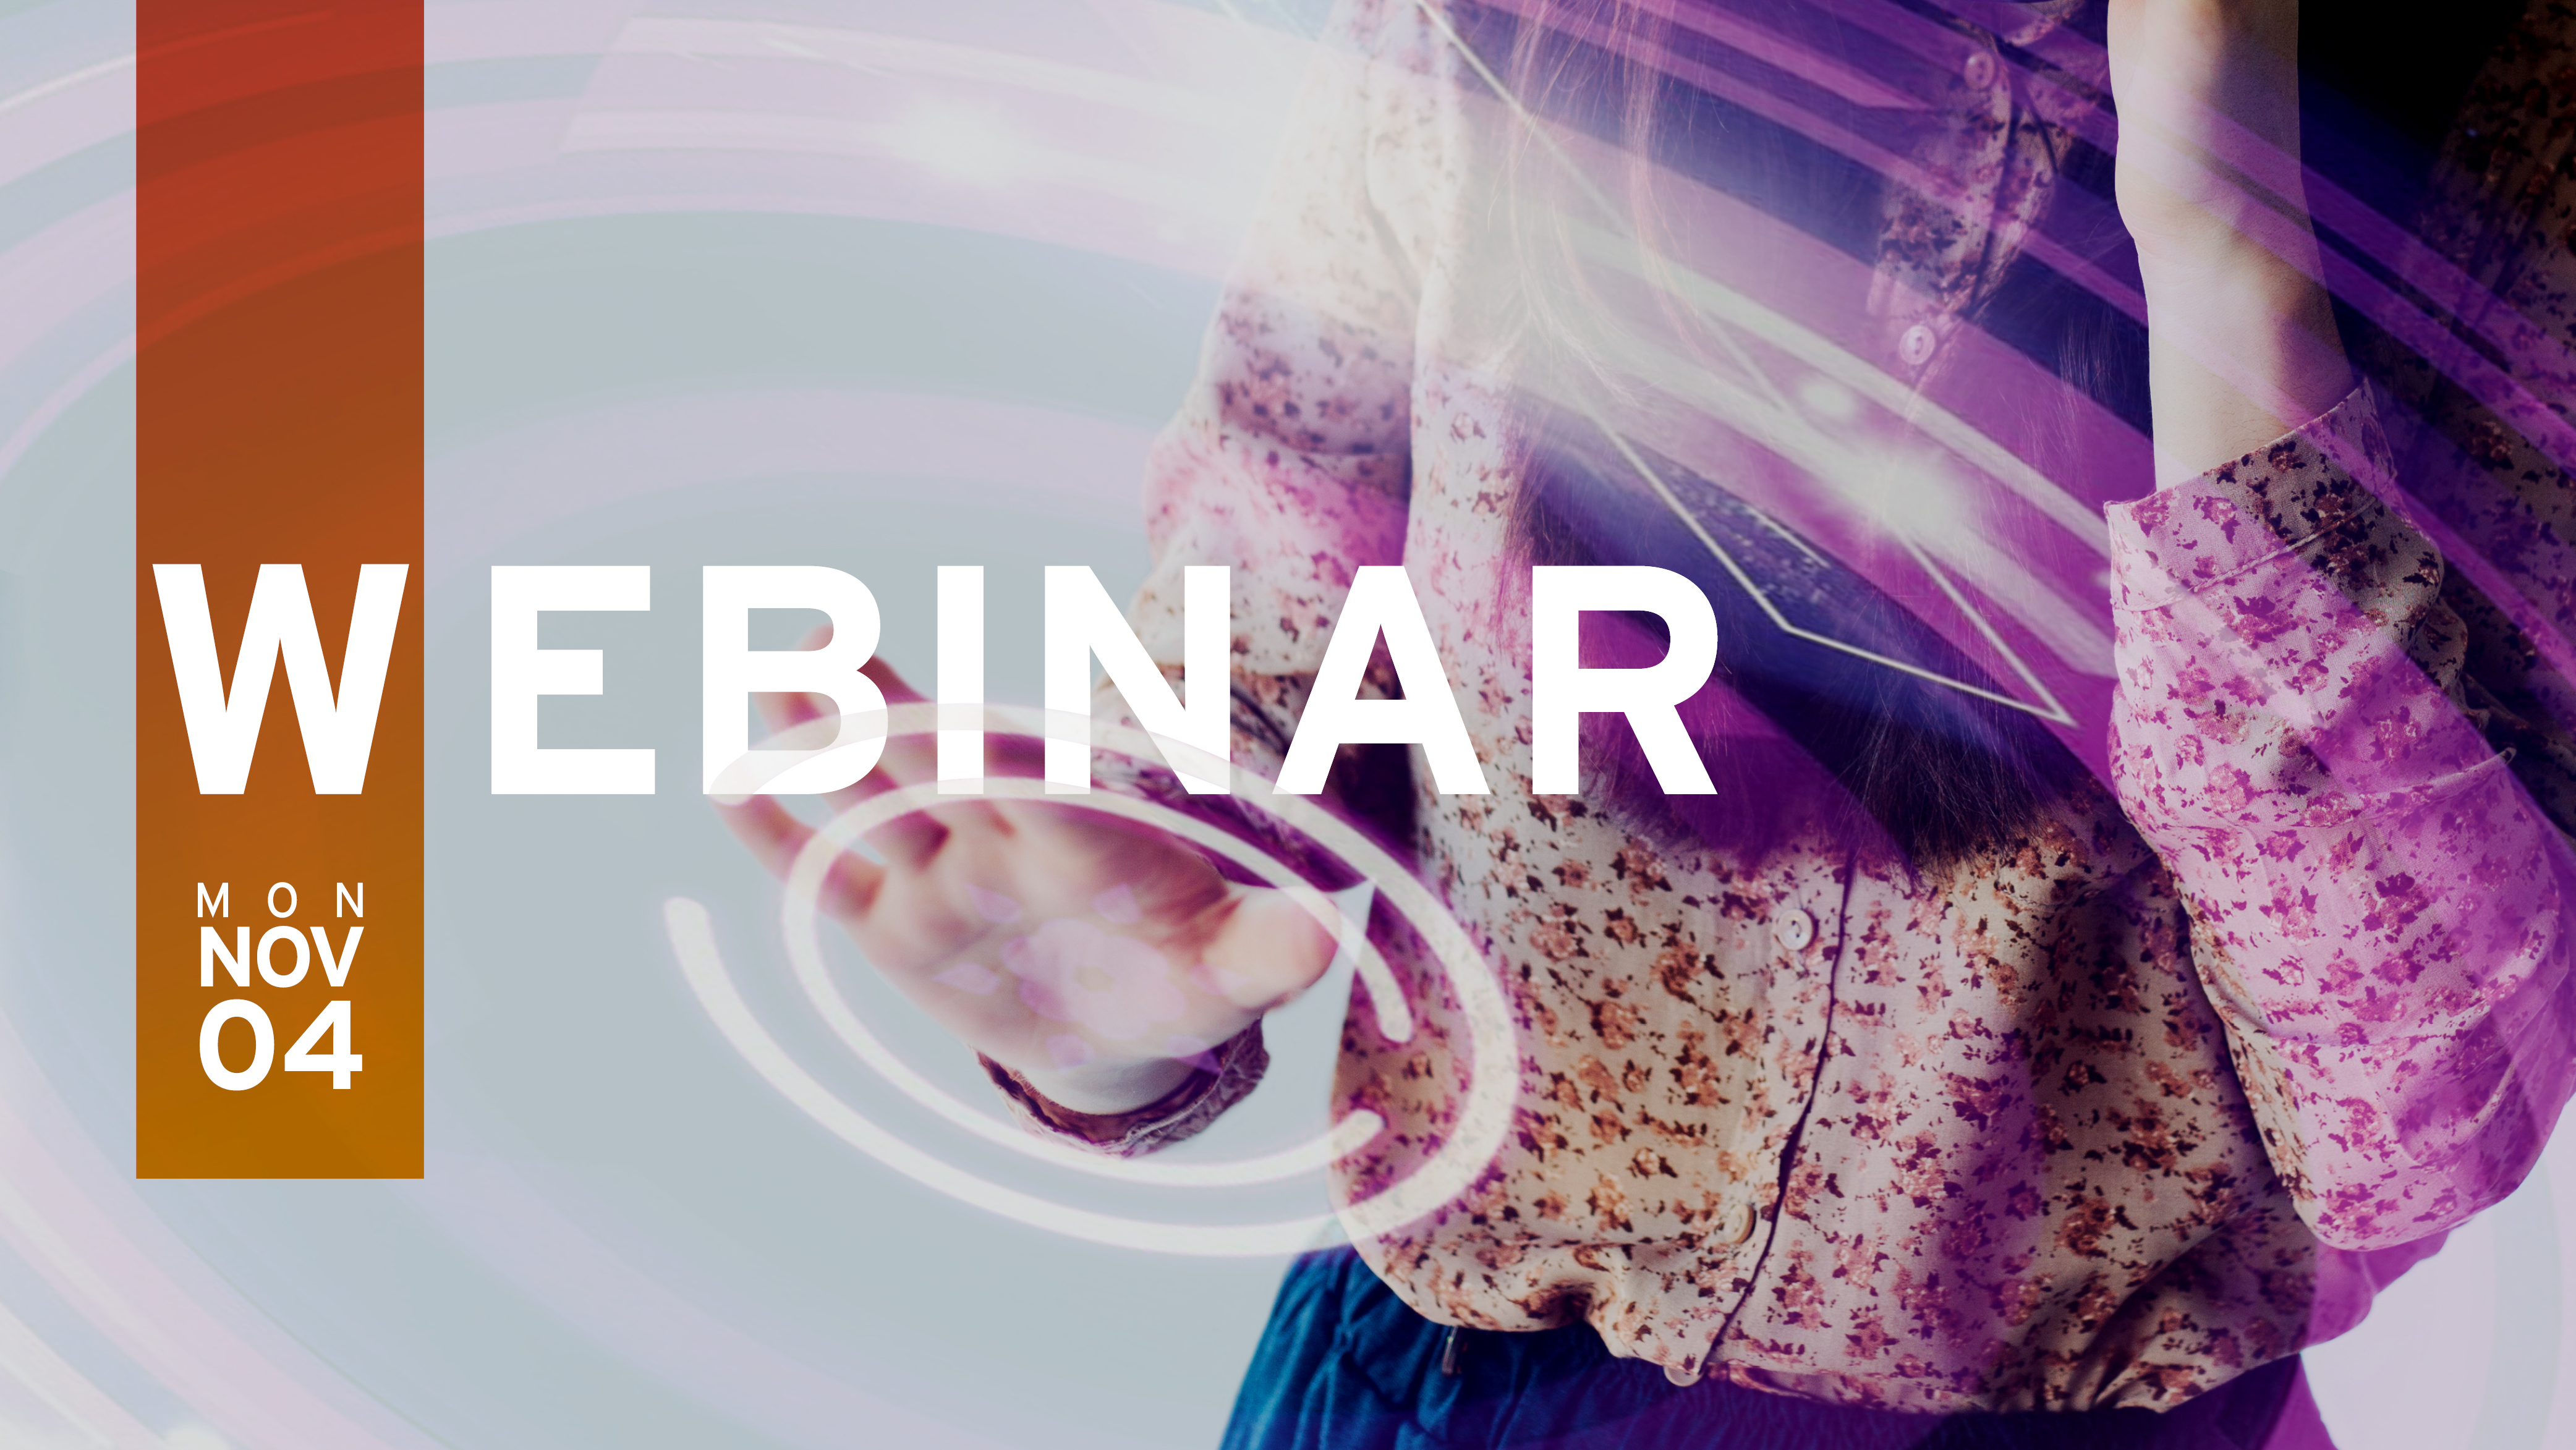 Getting a Grip on Your AI: Know What It Does. Understand the Risks and Rewards. Be Compliant